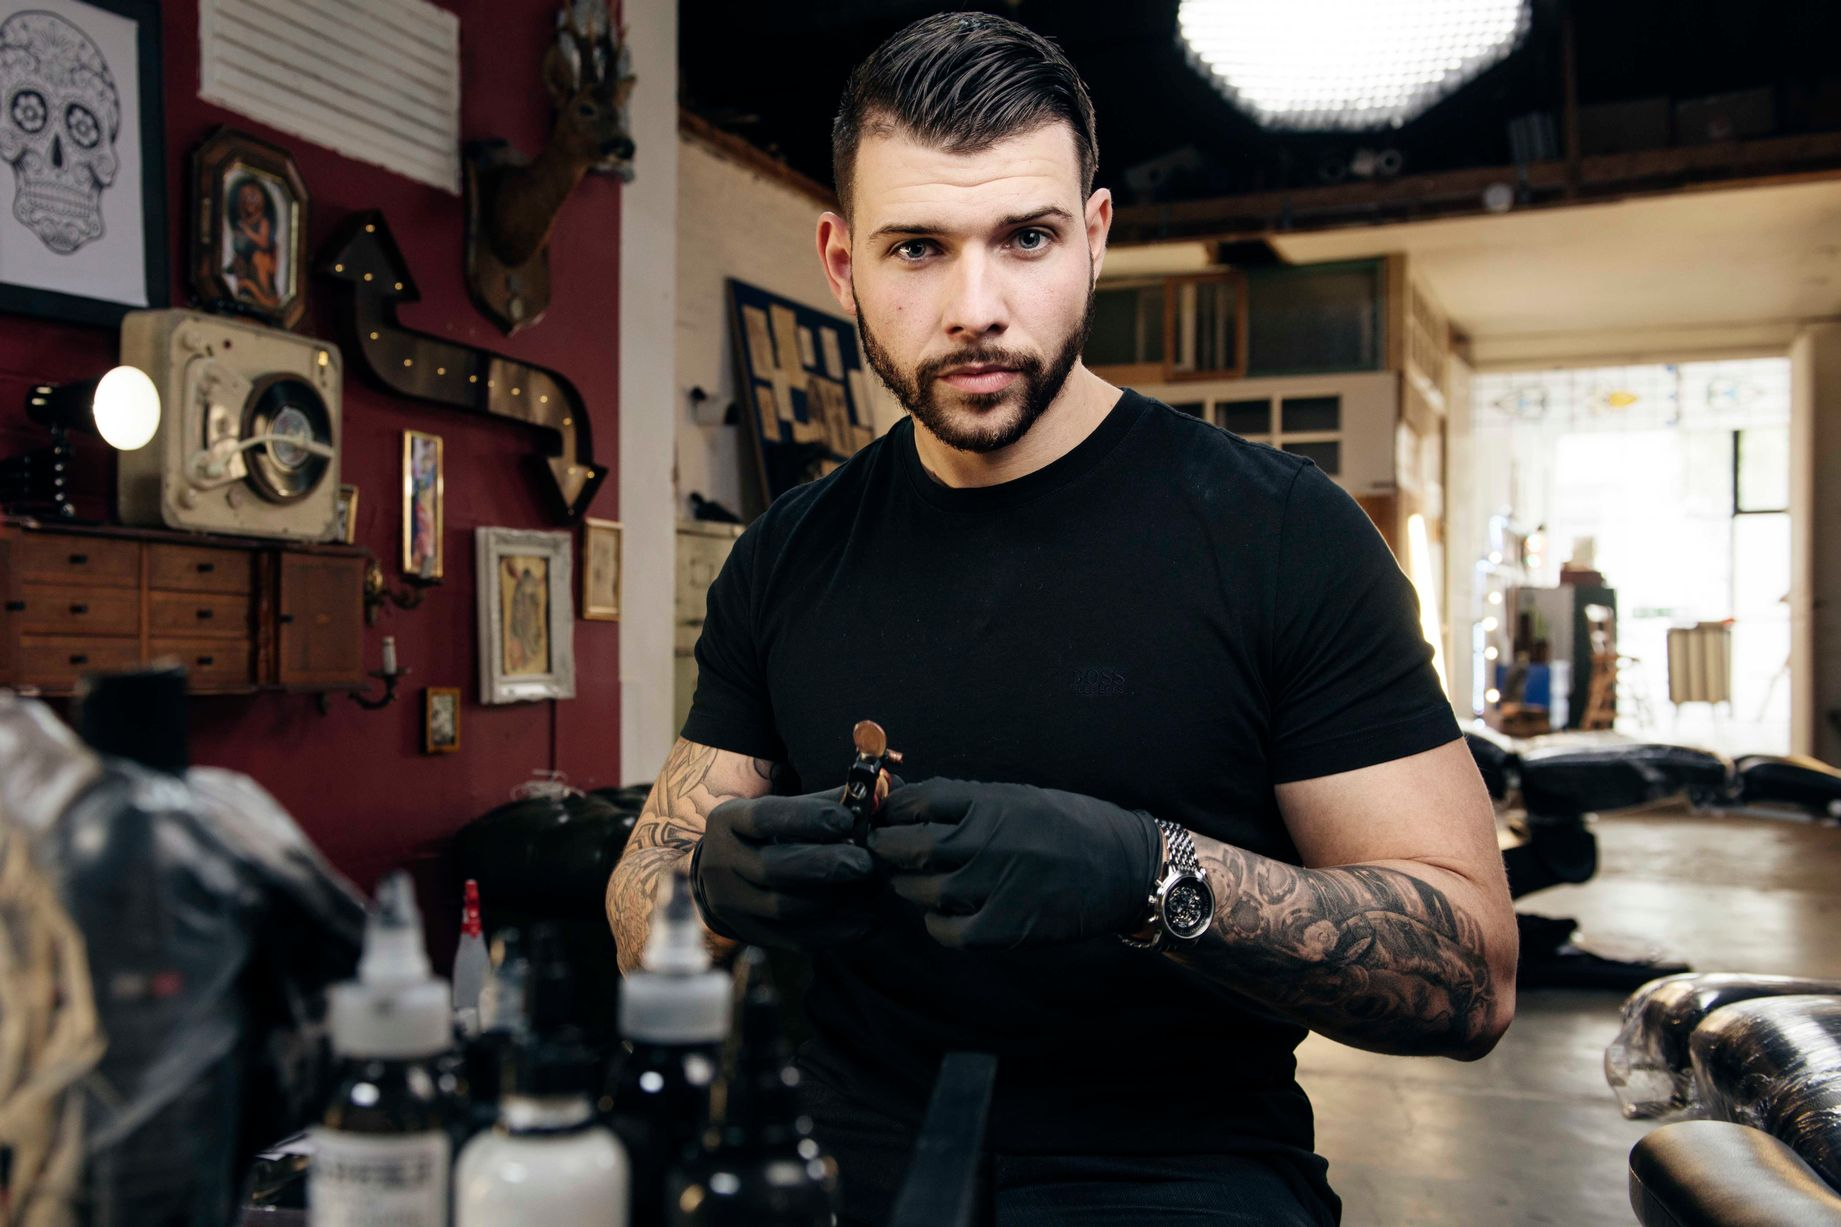 Jay Hutton From Tattoo Fixers Meet Greet At Warehouse